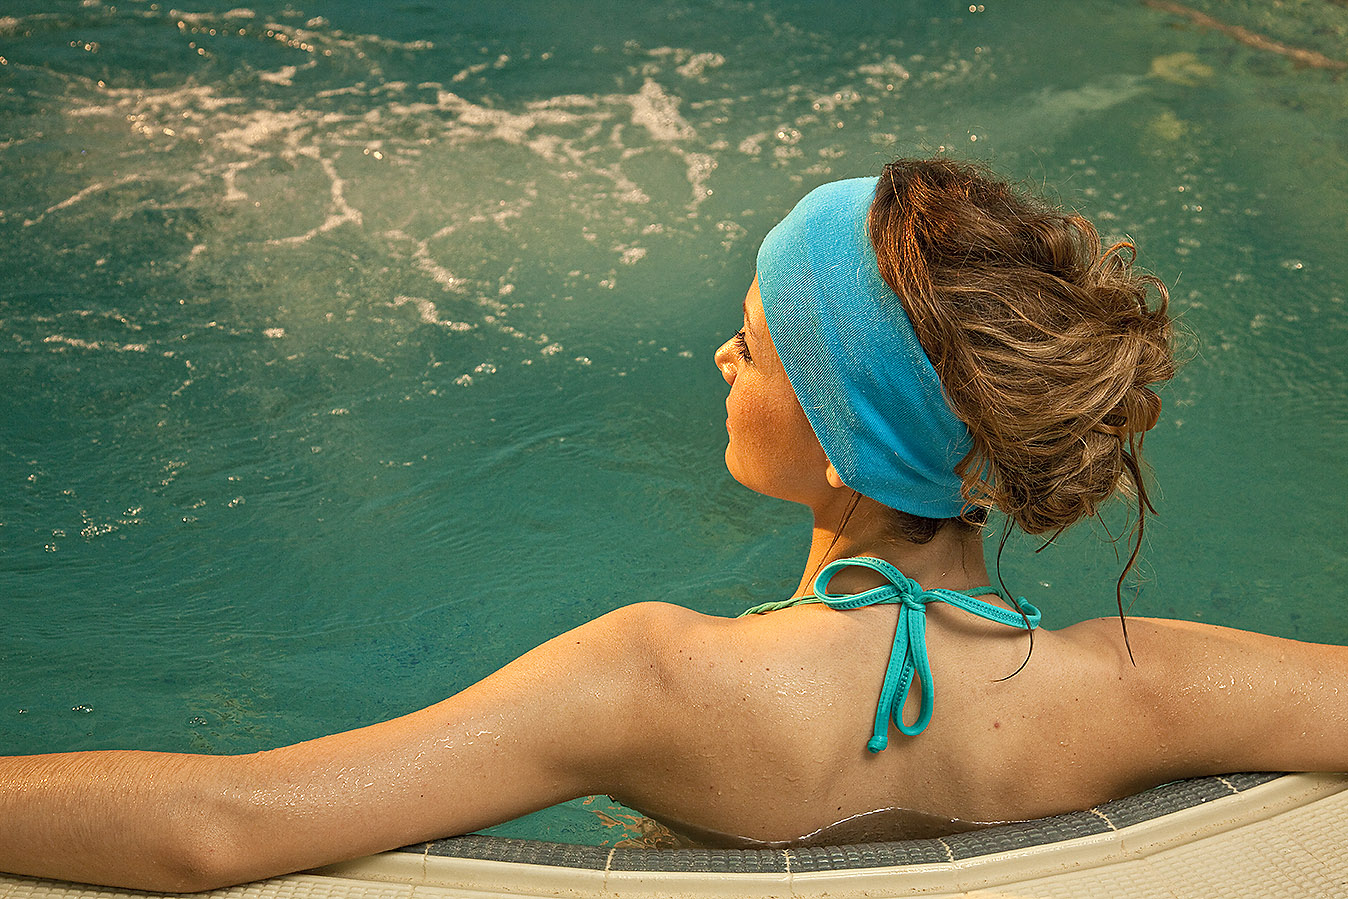 The thermal pools and the benefits for the body